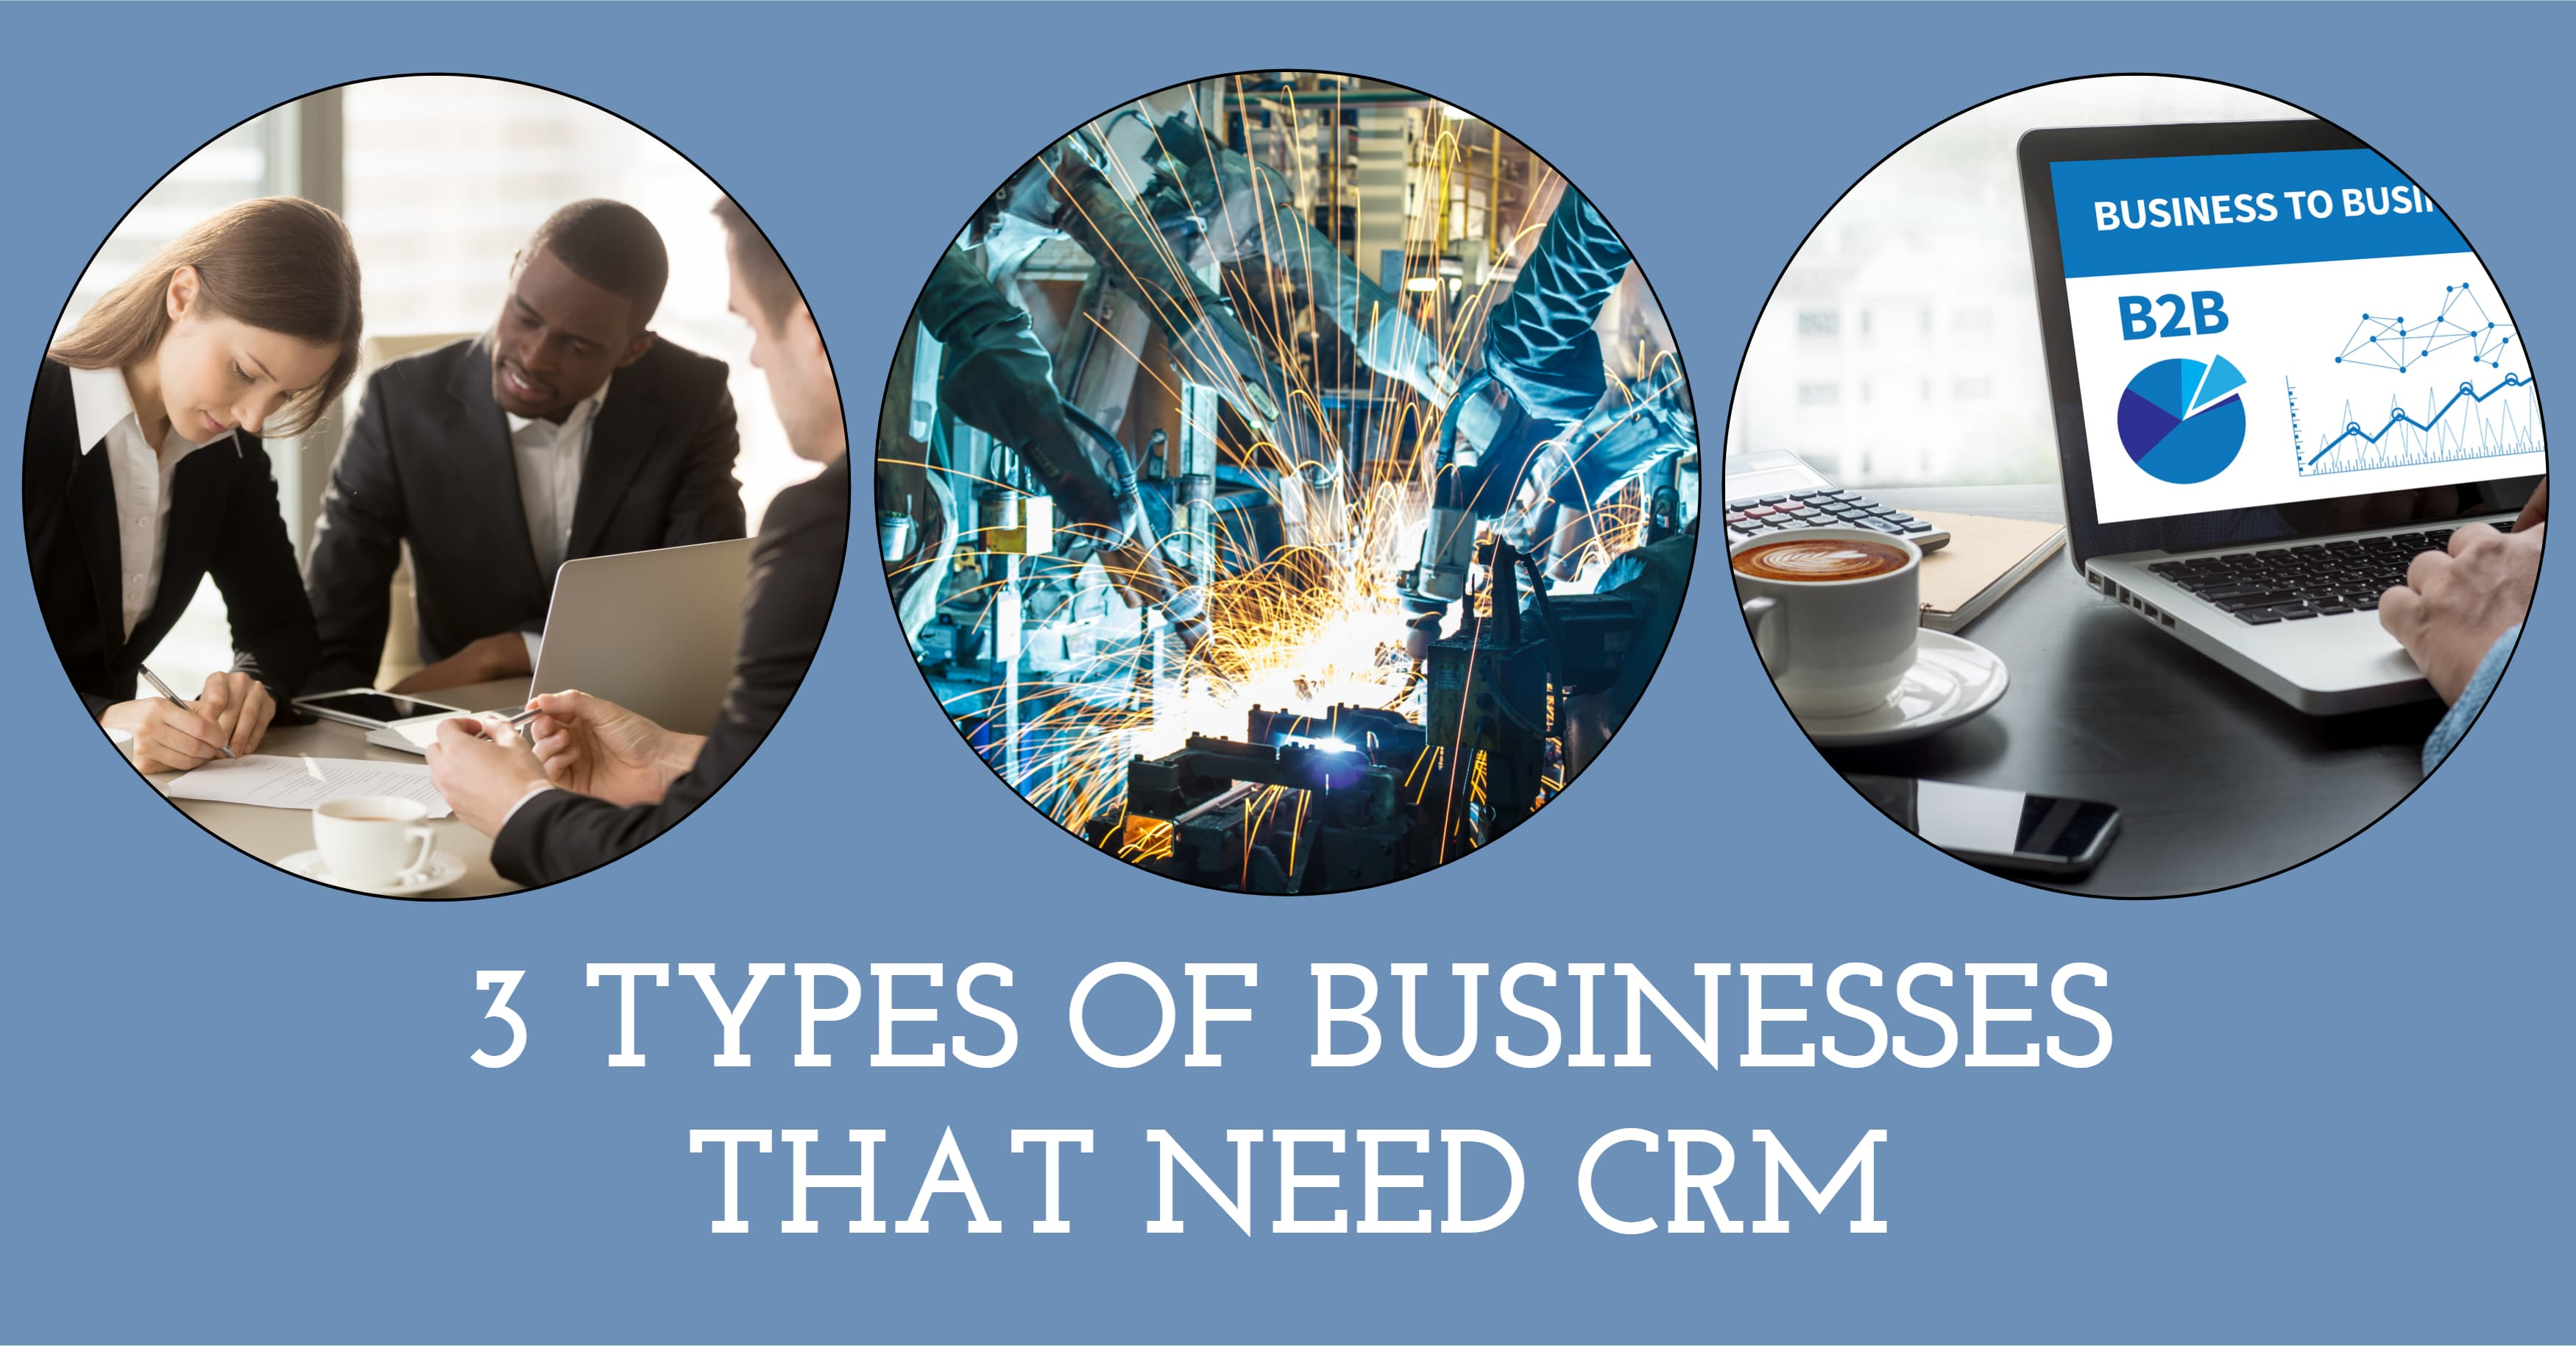 3 Types of Businesses that Need CRM